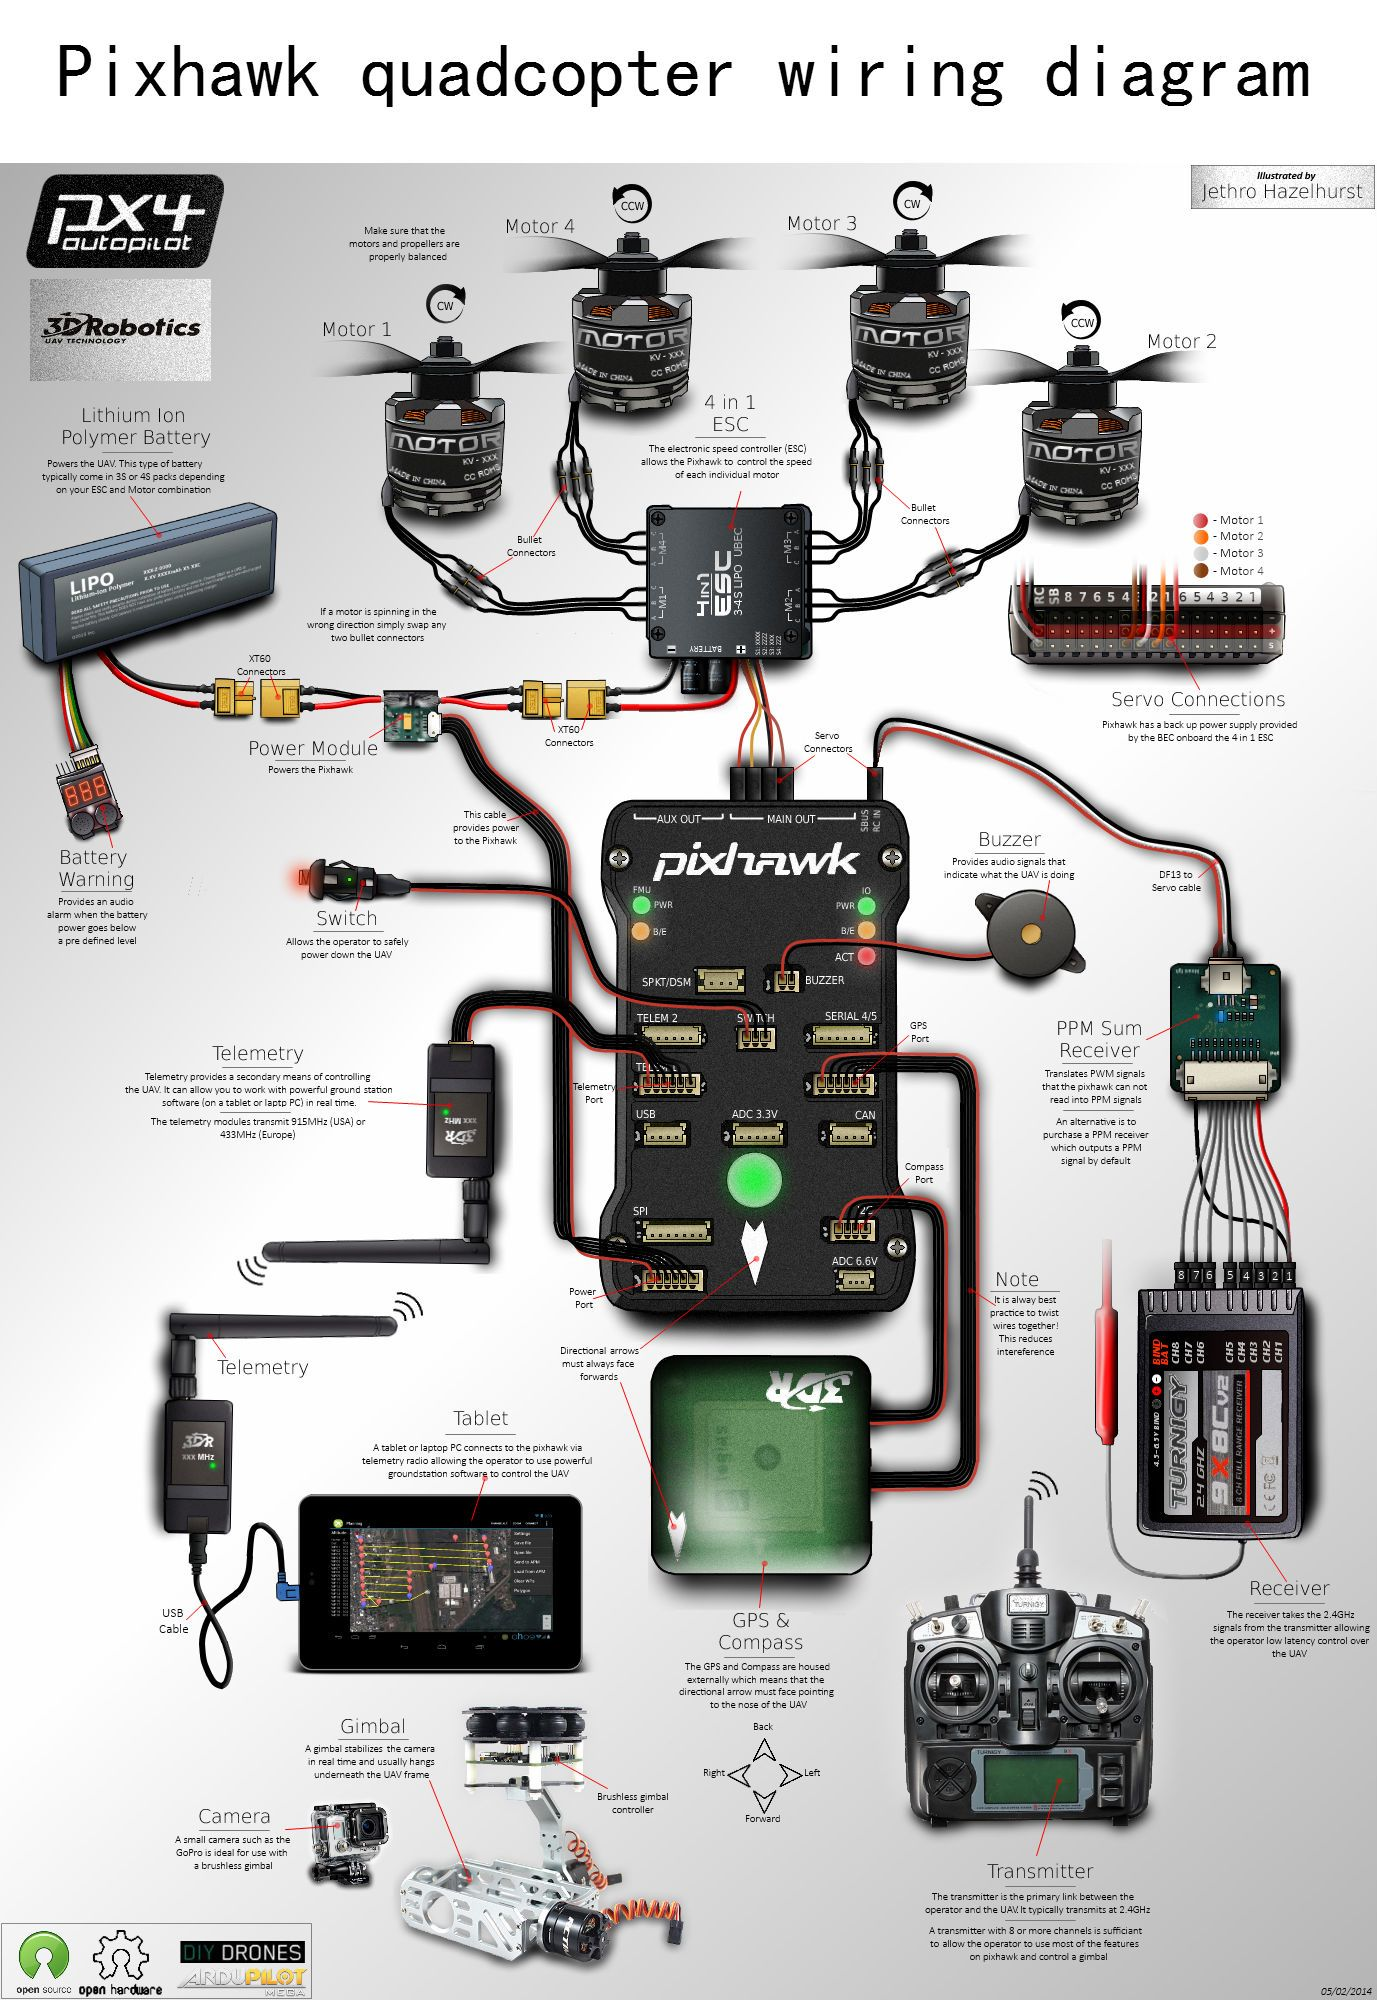 quadcopter wiring diagram pixhawk quadcopter wiring | diy quadcopter | drone ...